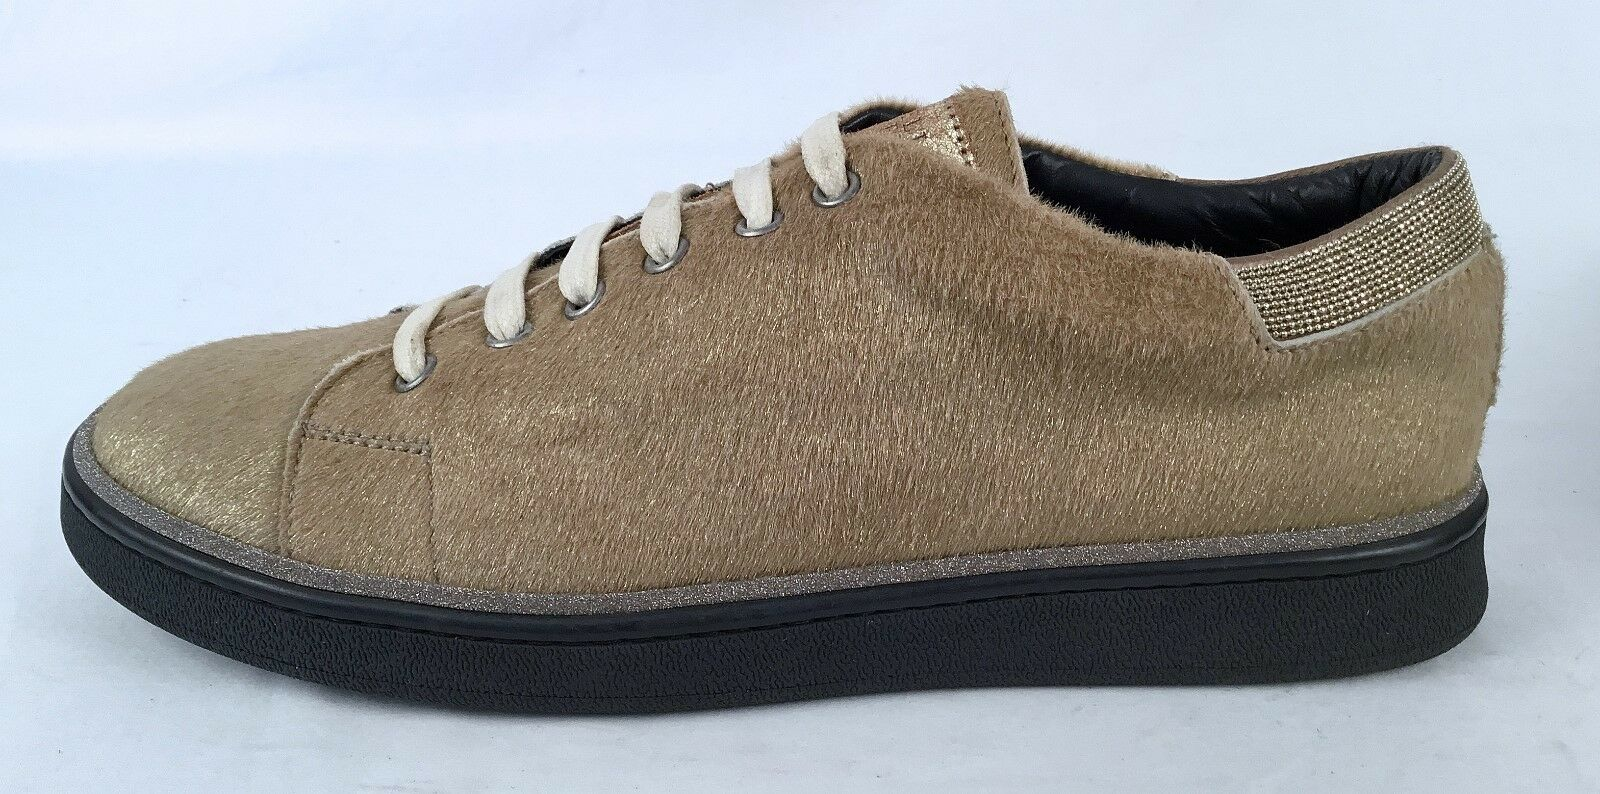 NEW   Brunello Cucinelli Calf Hair baskets -Taille -Taille -Taille US 11  EU 41-  1395  (P70) 5a6ae1